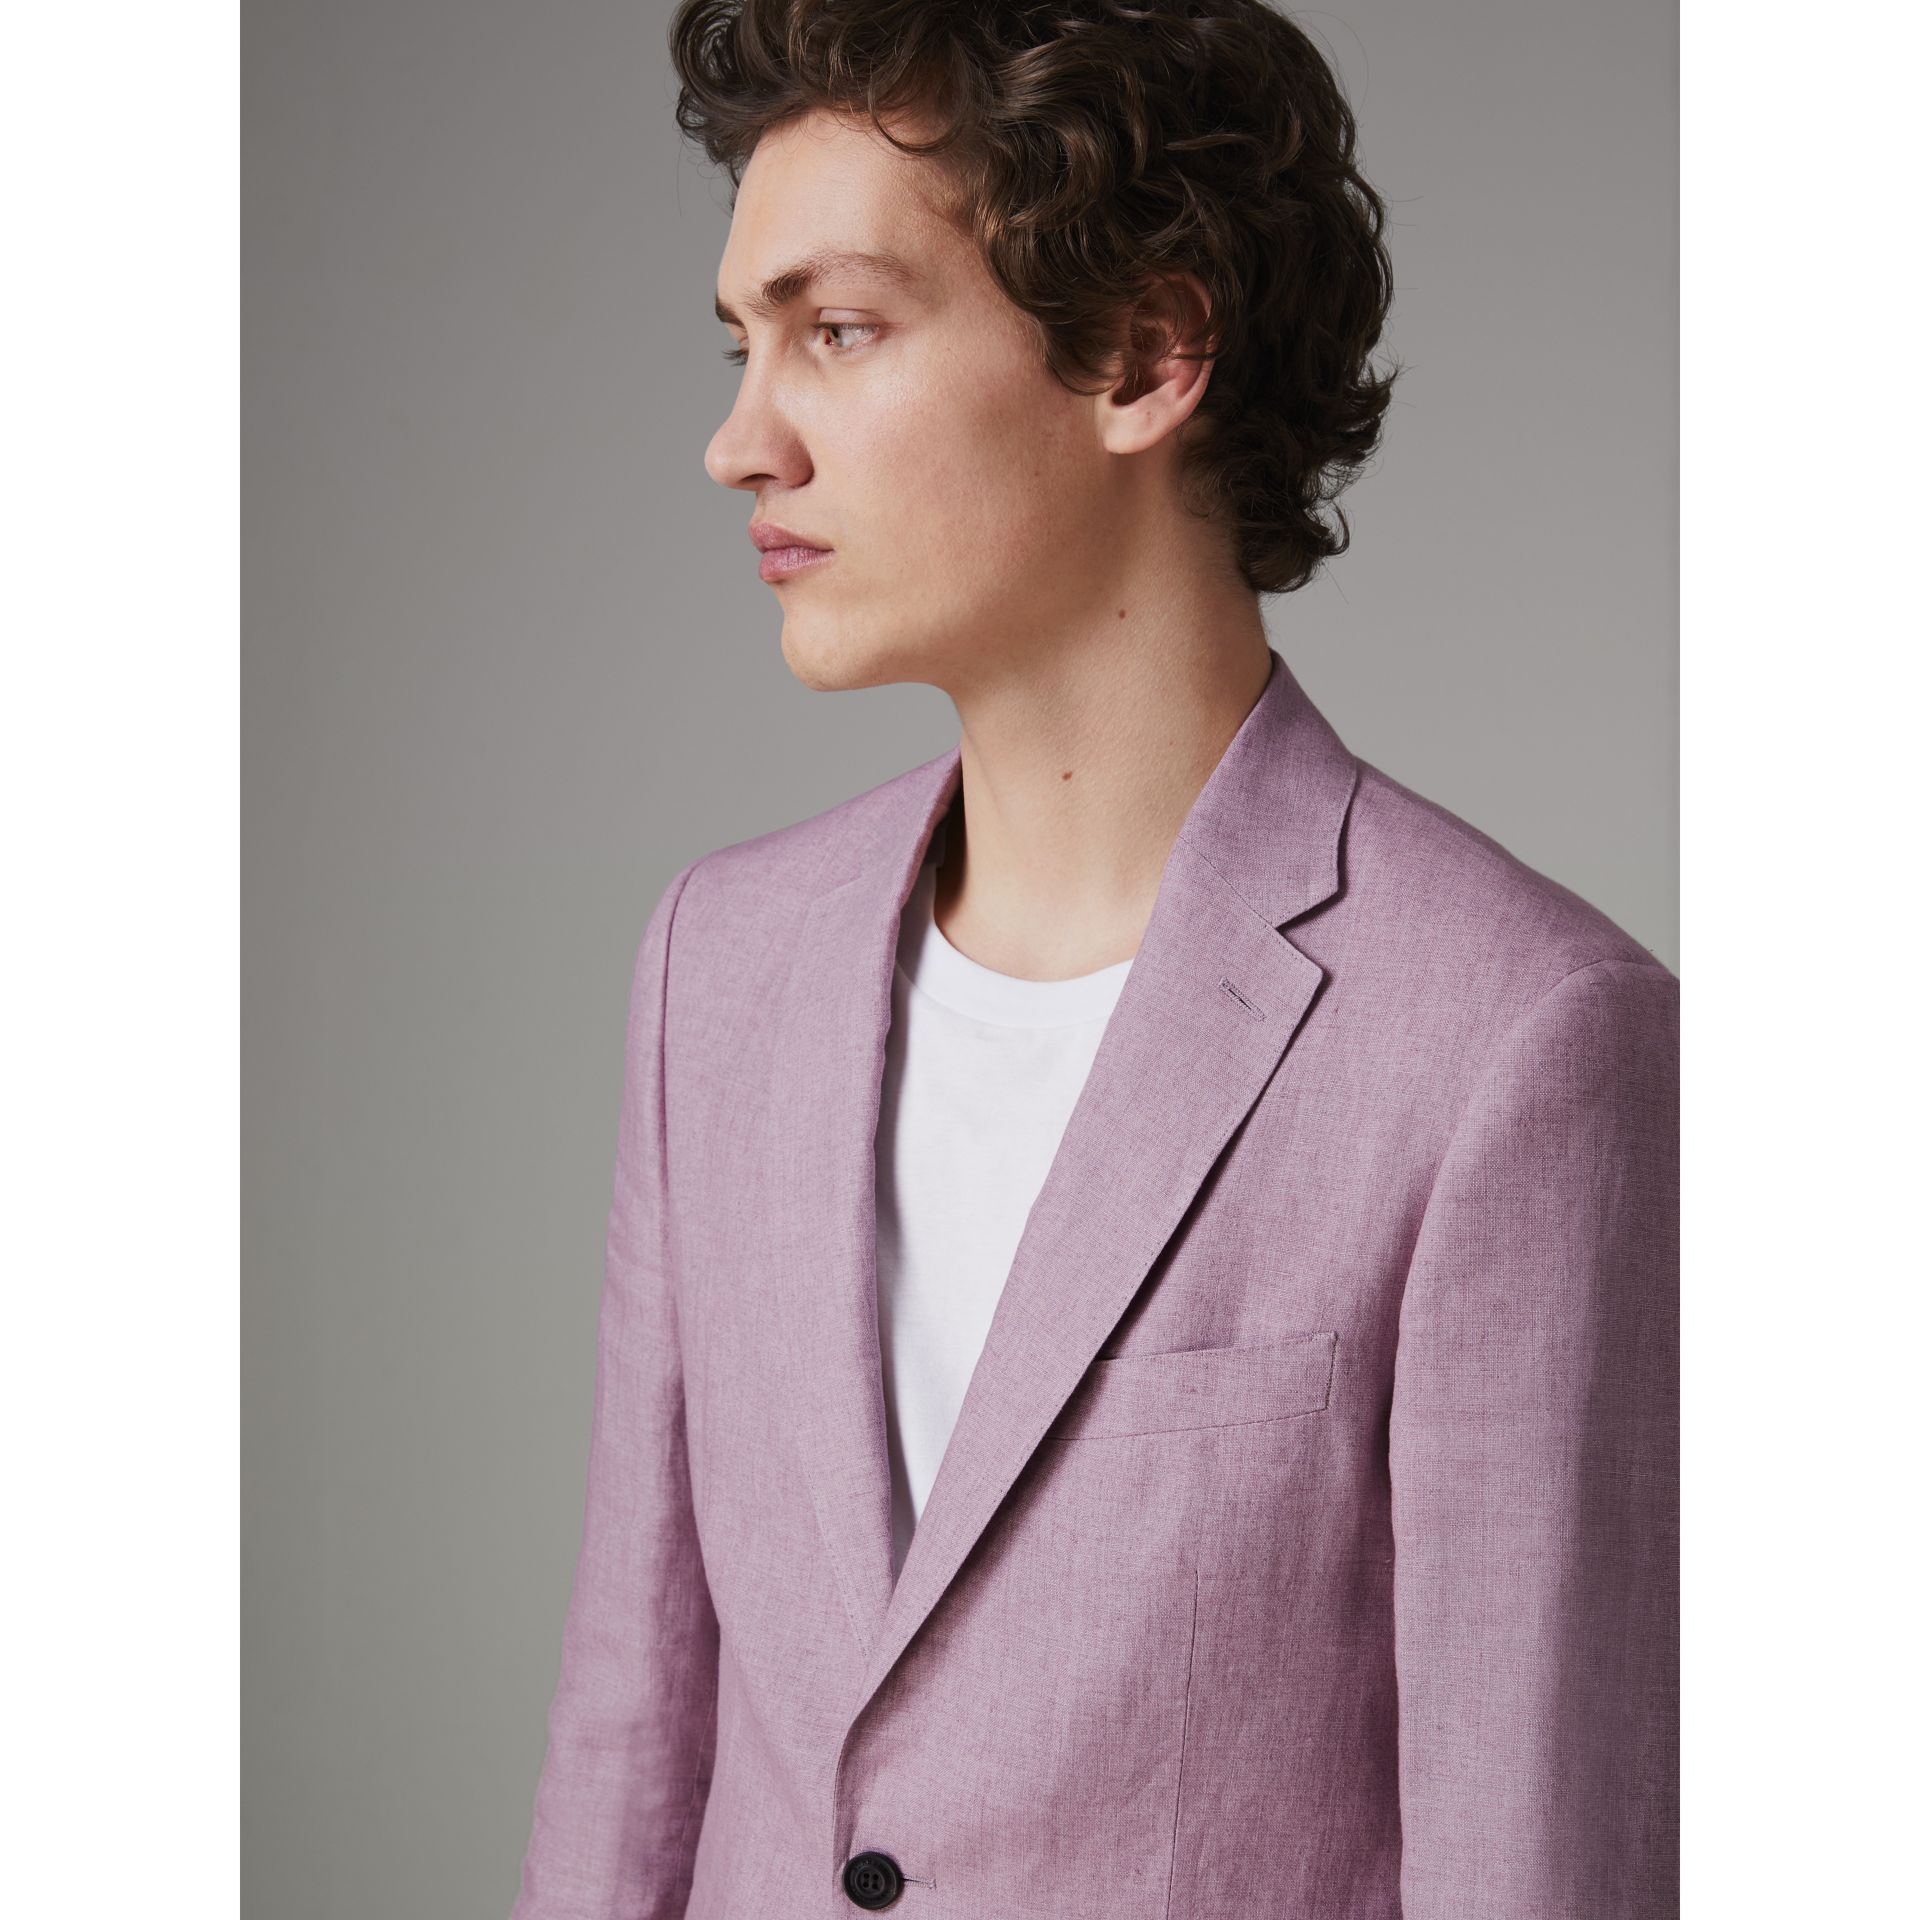 Soho Fit Linen Tailored Jacket in Pink Heather - Men | Burberry - gallery image 1